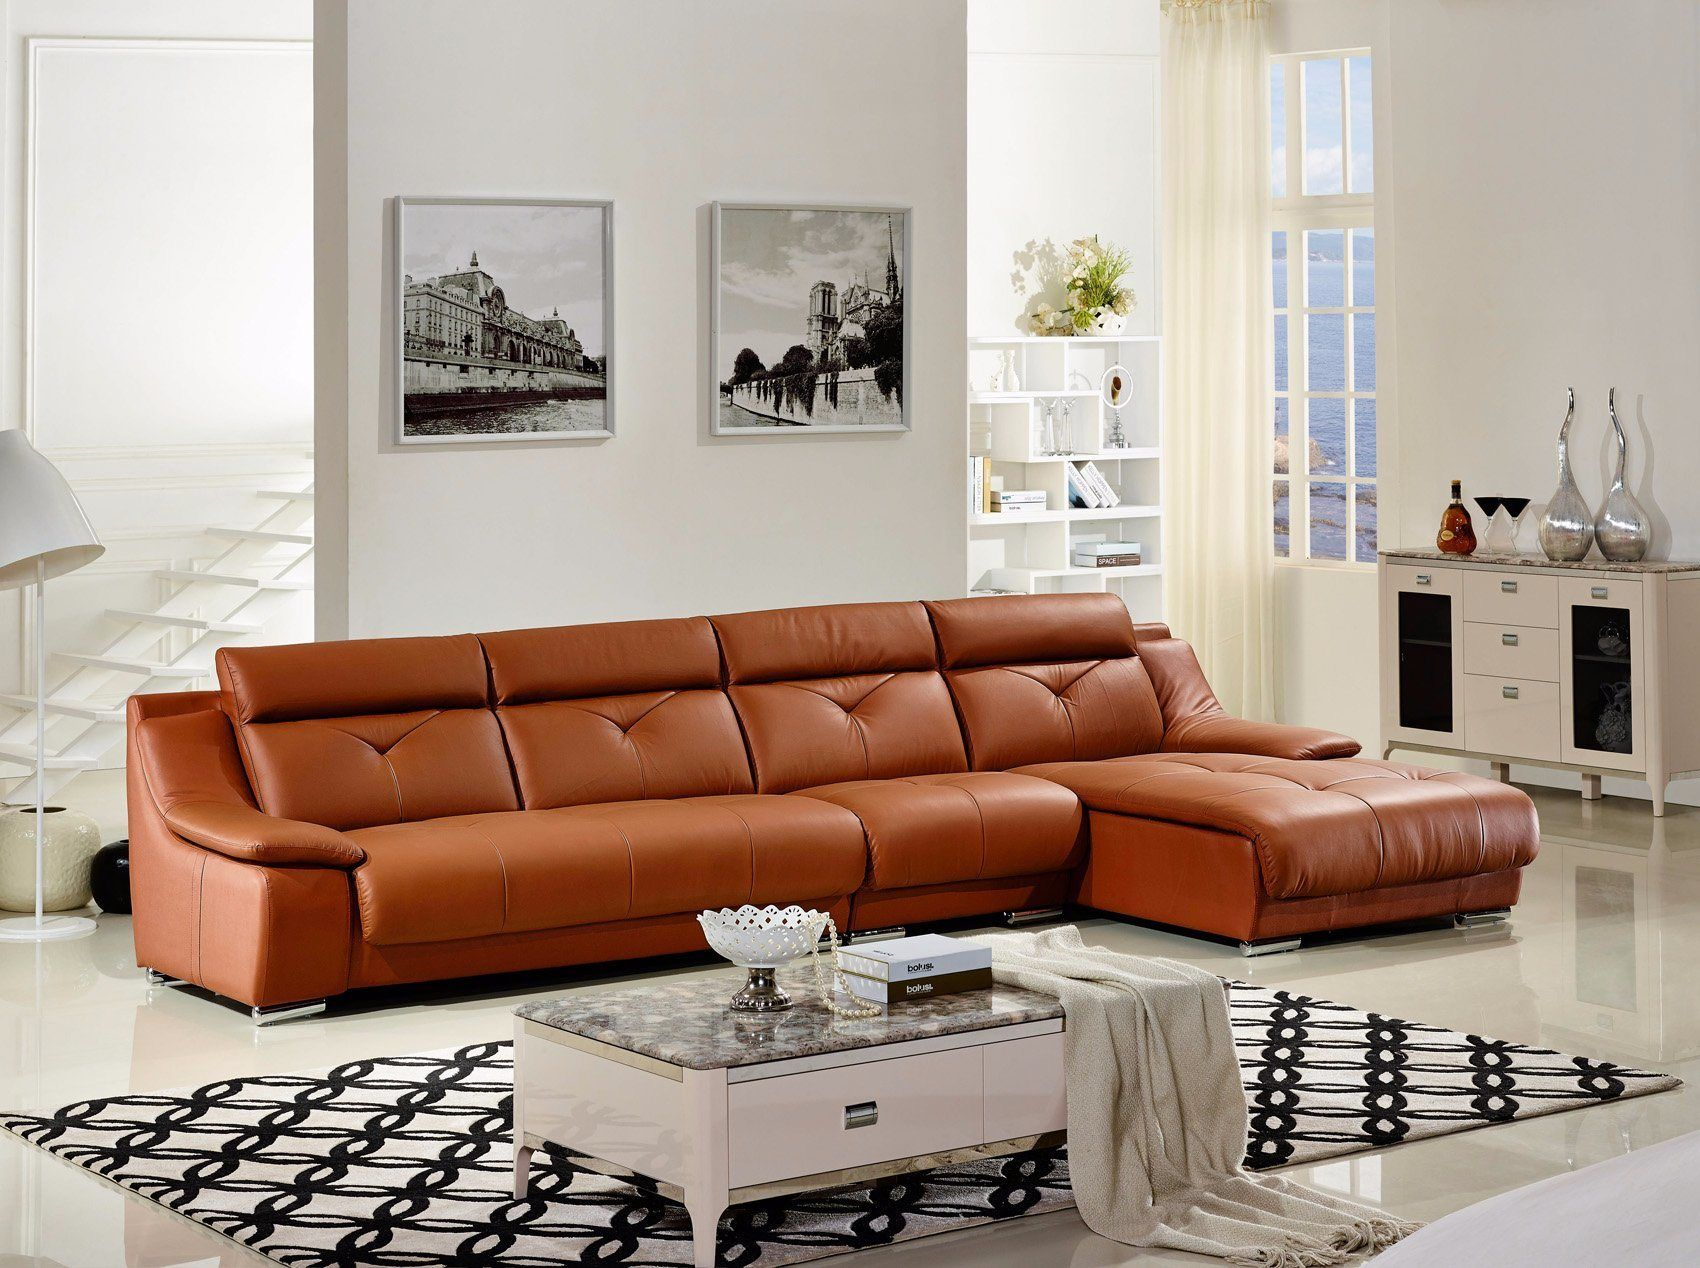 Modern Contemporary Leather Sofa In 2020 Contemporary Leather Sofa Sofa Table Design Couch Design